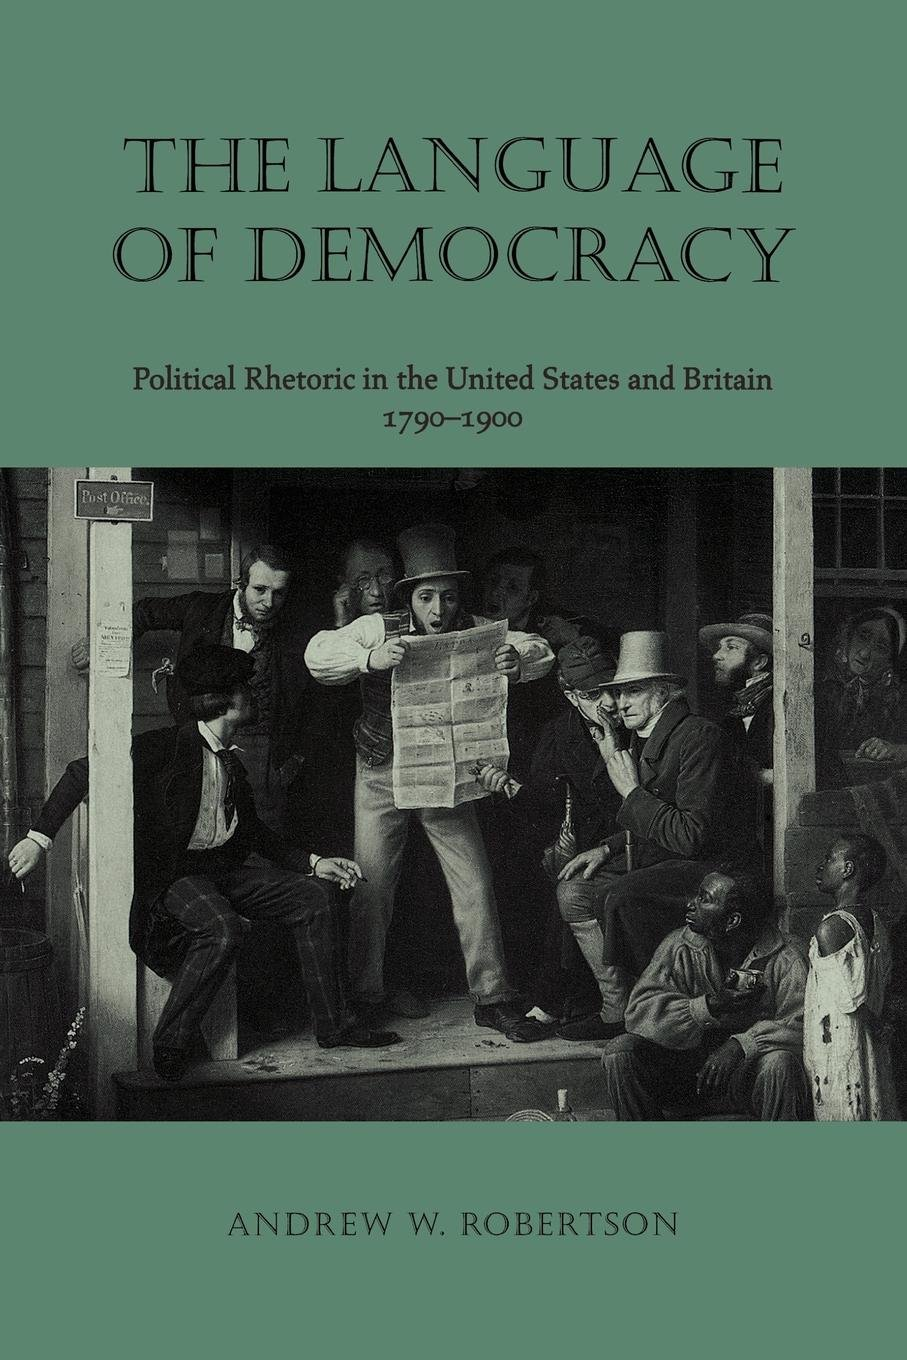 The Language of Democracy: Political Rhetoric in the United States and Britain, 1790–1900